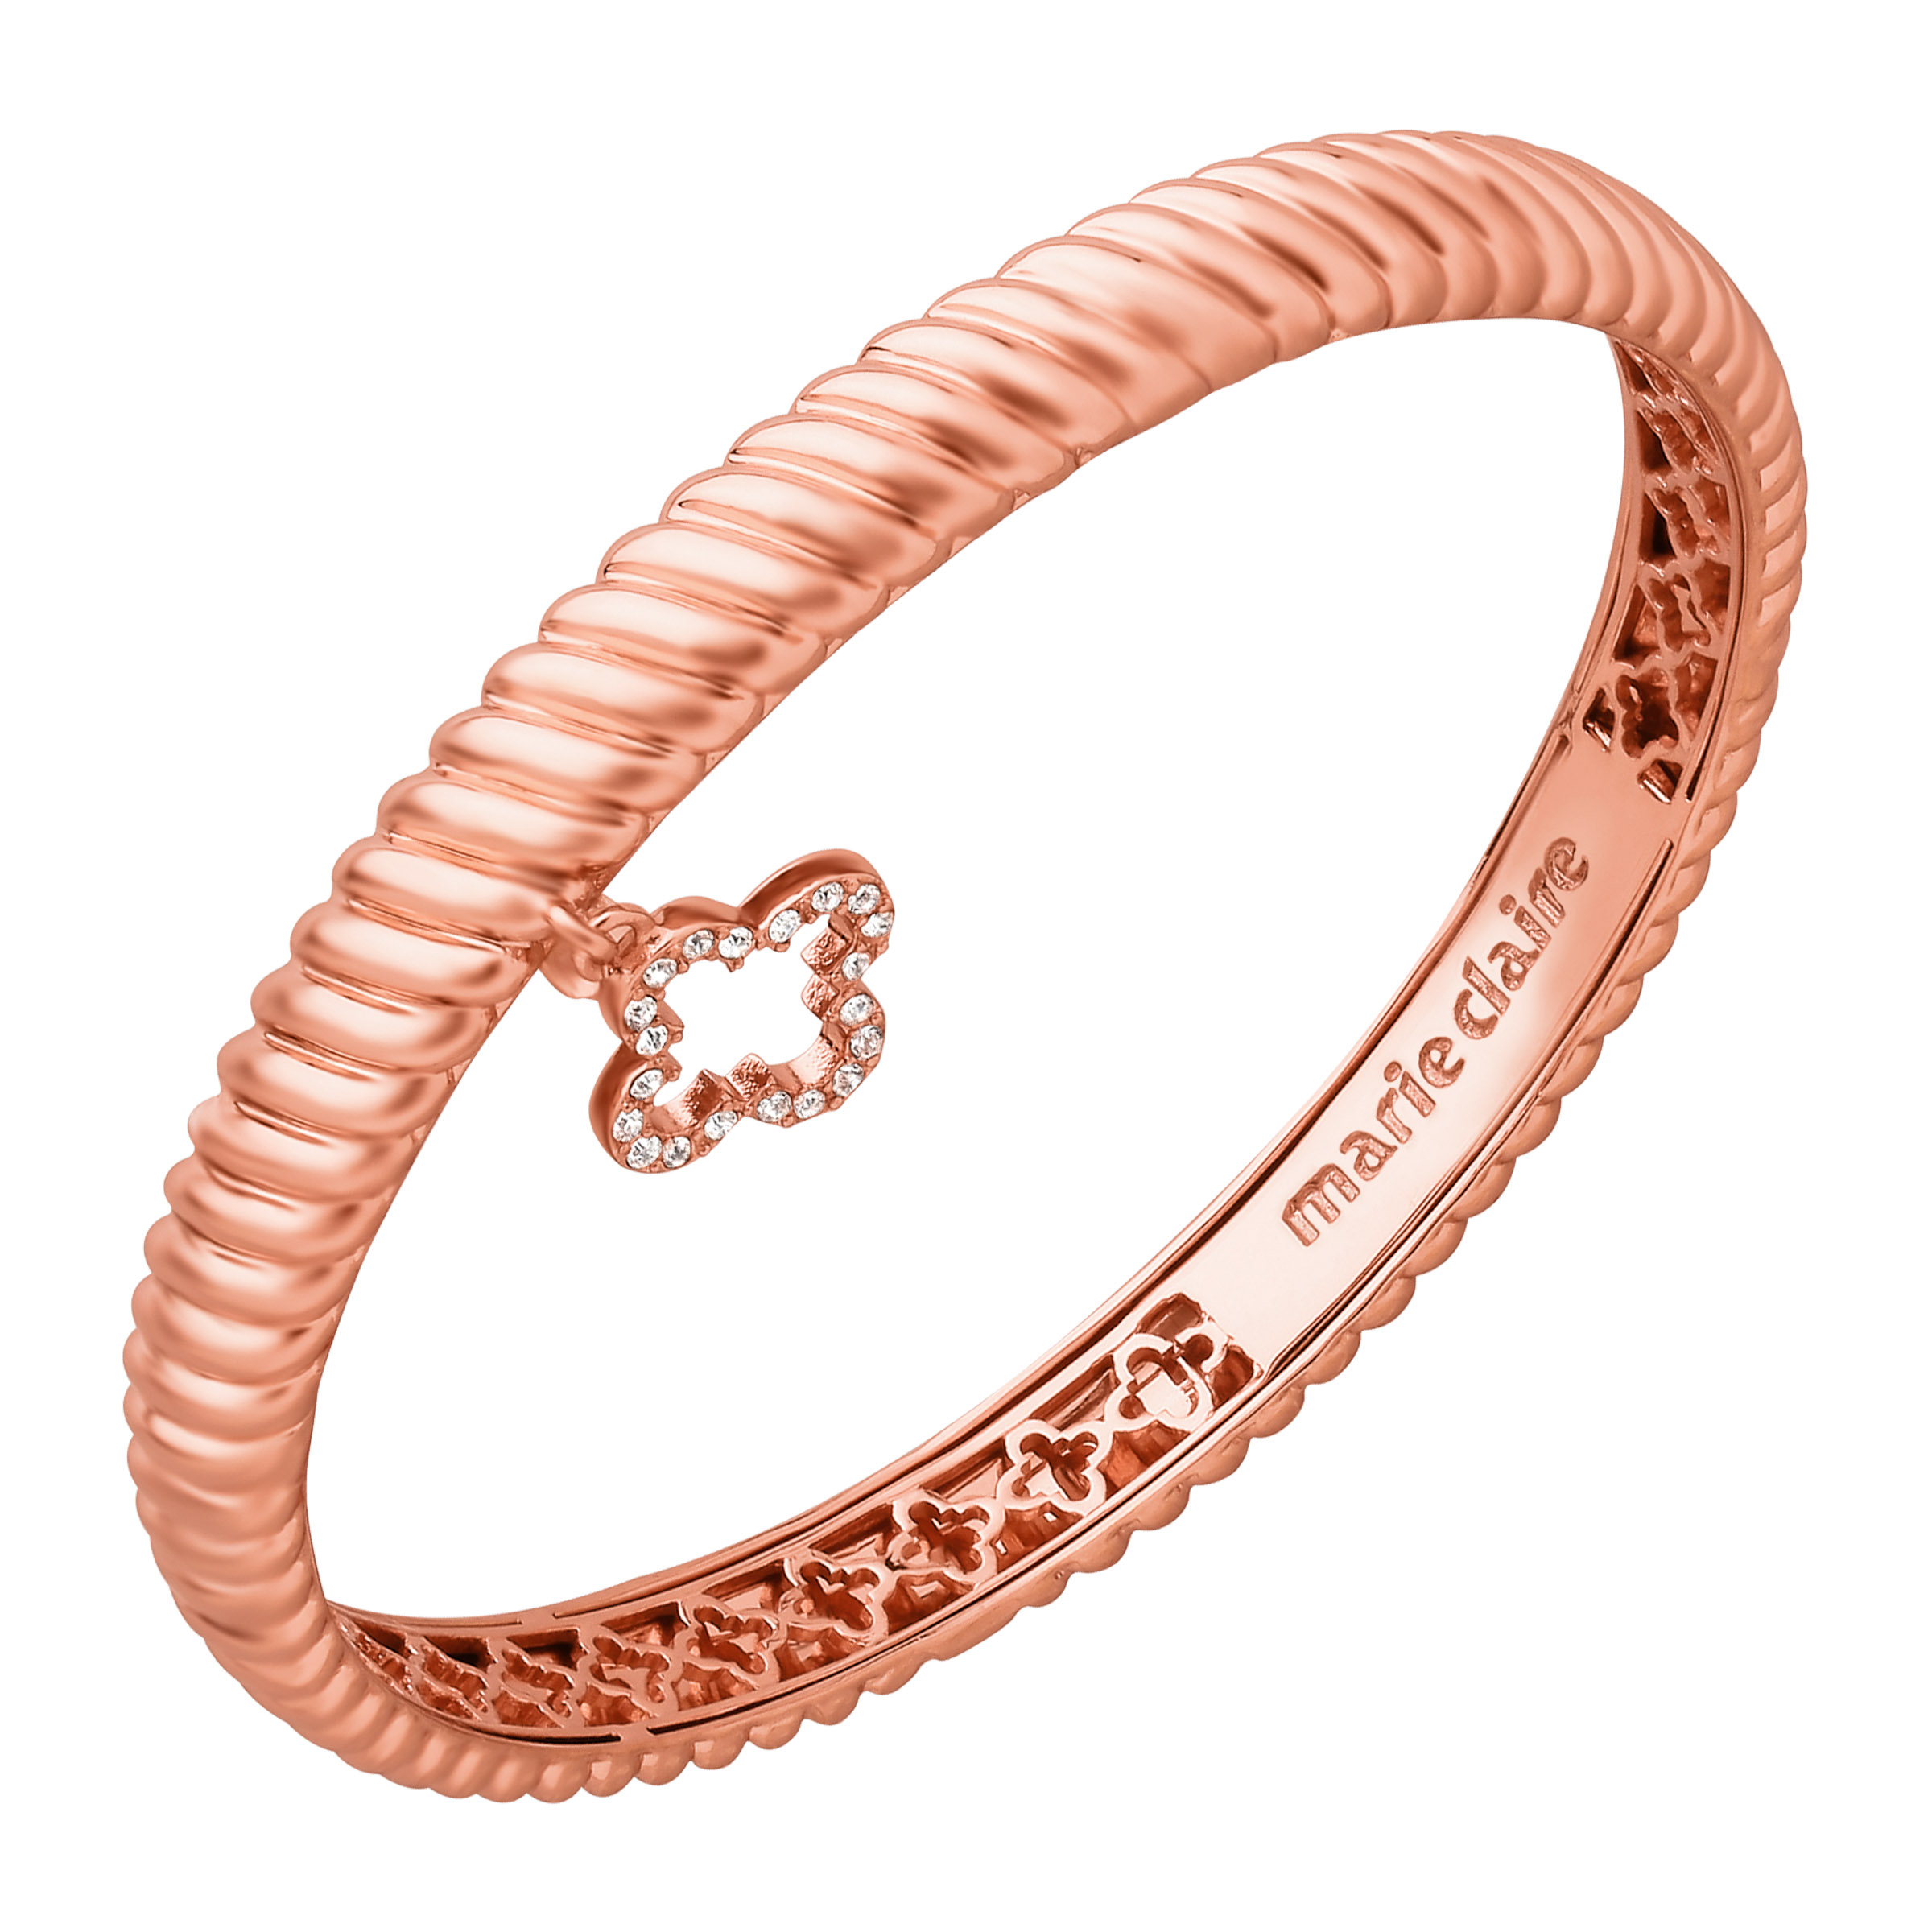 Marie Claire Crystal Clover Charm Bangle Bracelet in 14kt Rose Gold over Brass